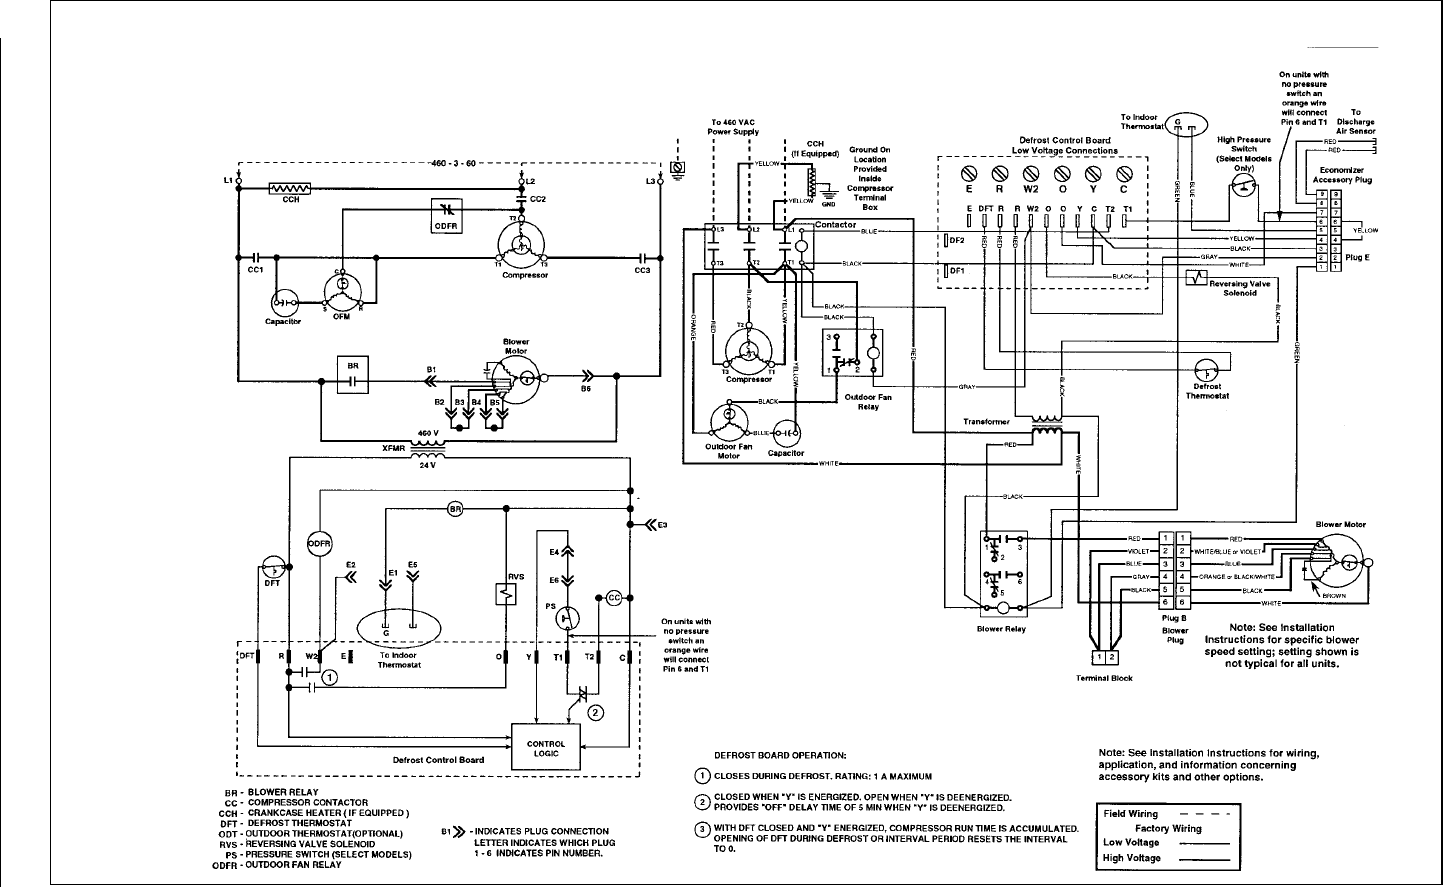 12ef14e5 f0fc 4598 8d26 d64902da494b bg12 nordyne wiring diagram nordyne control board wiring diagram at eliteediting.co